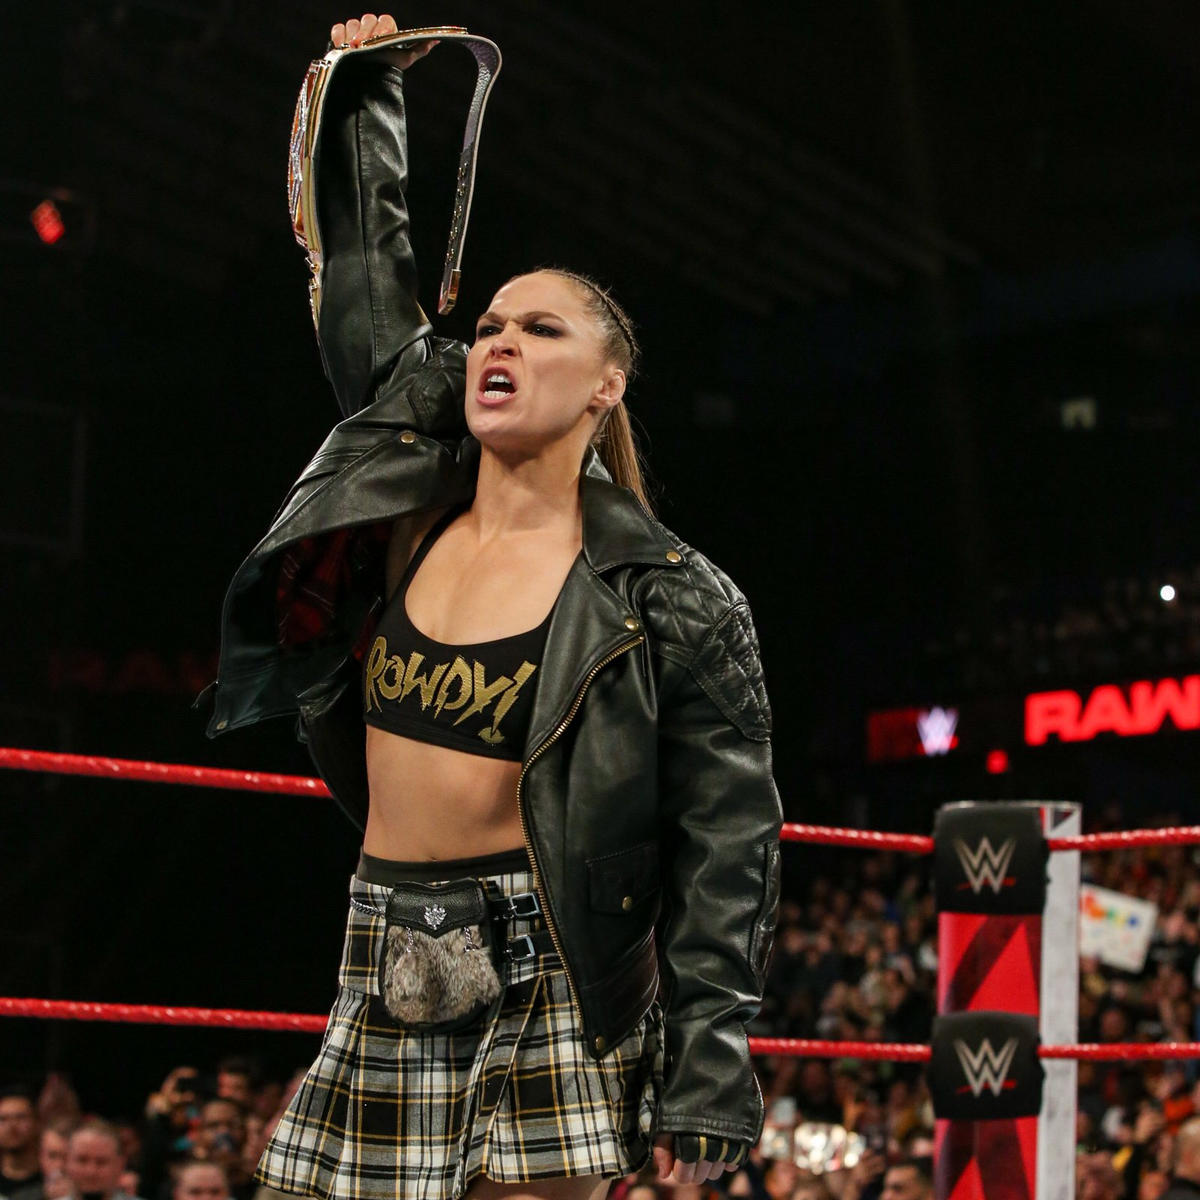 Ronda Rousey Returning To WWE; Gets New Tattoo 1